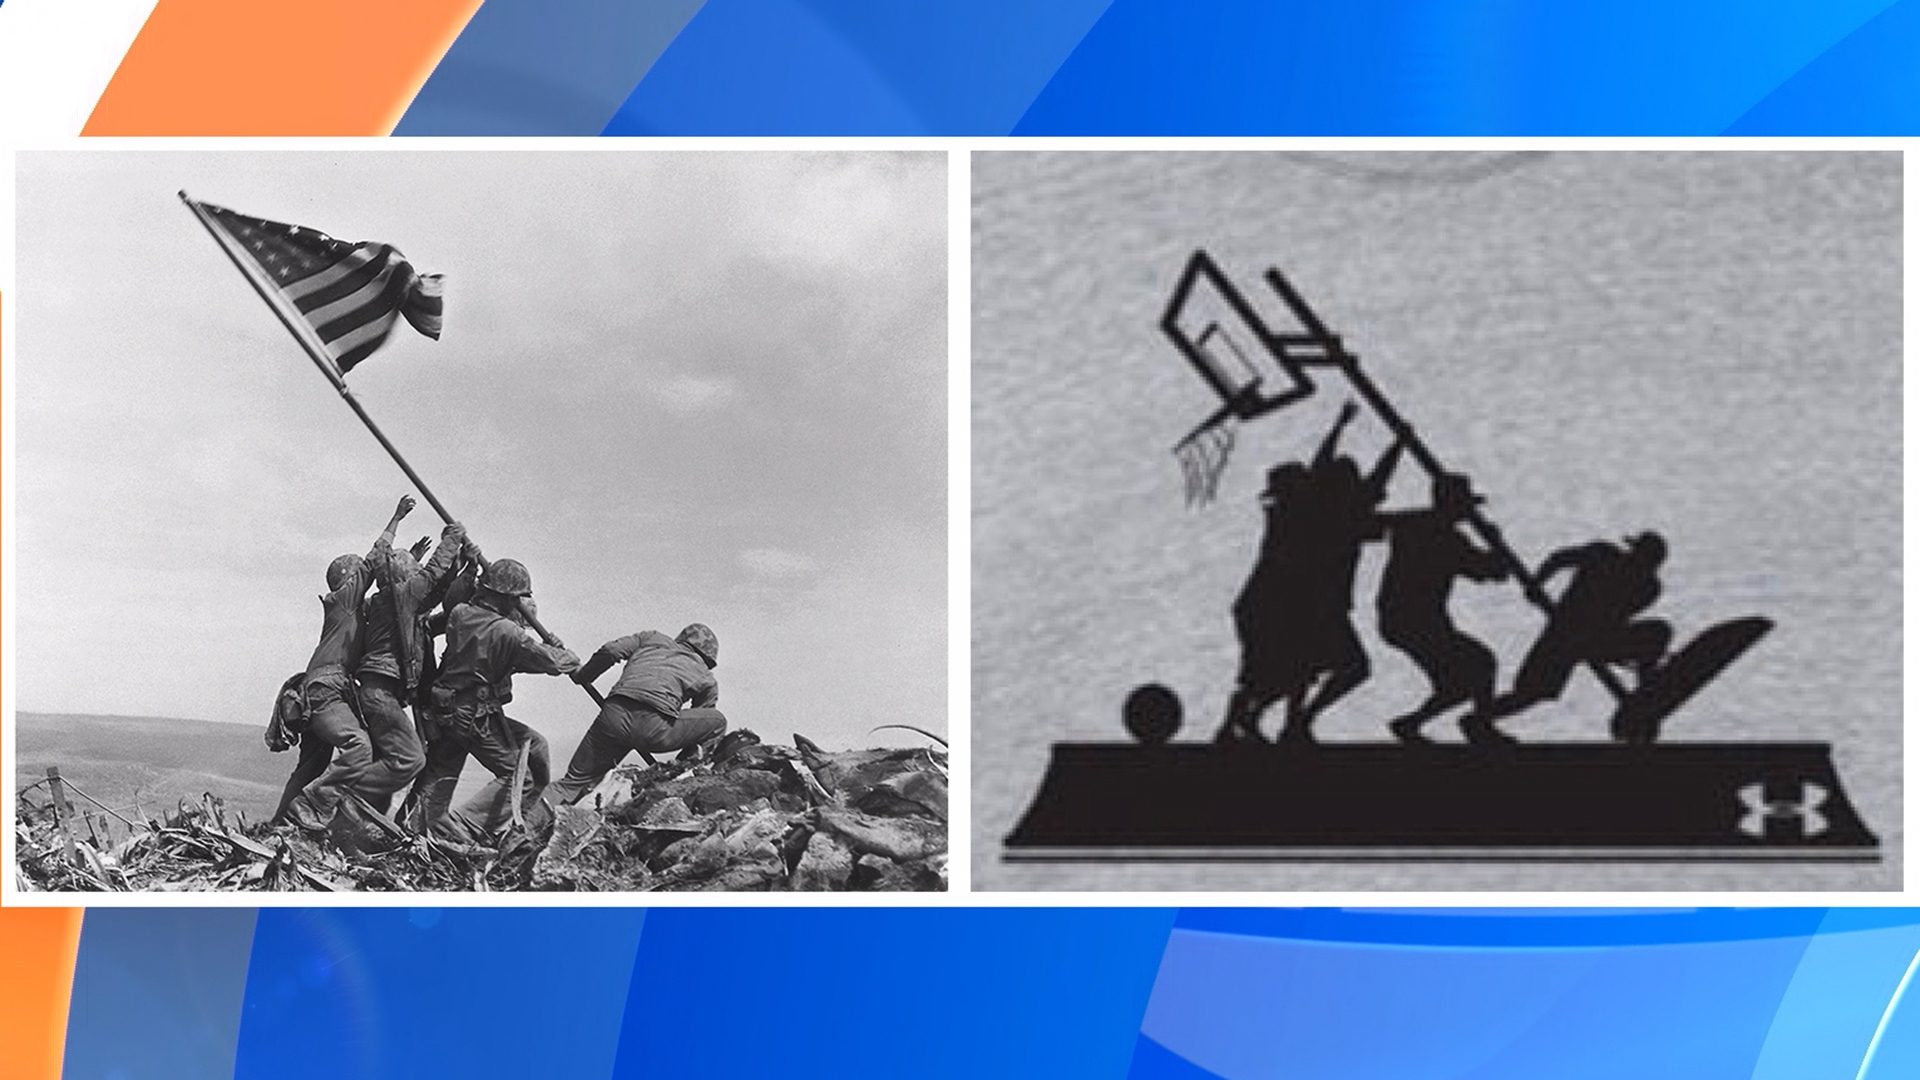 Under Armour under fire for using WWII